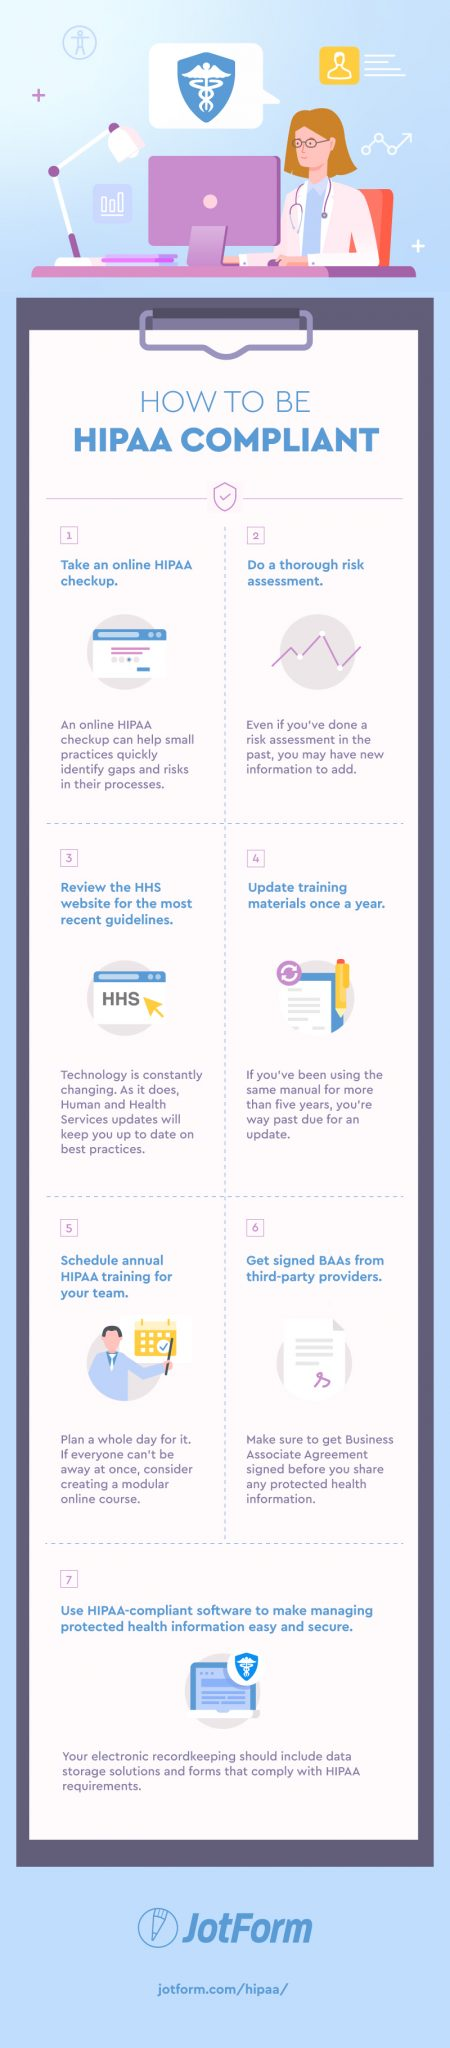 Follow these steps to become fully HIPAA-compliant